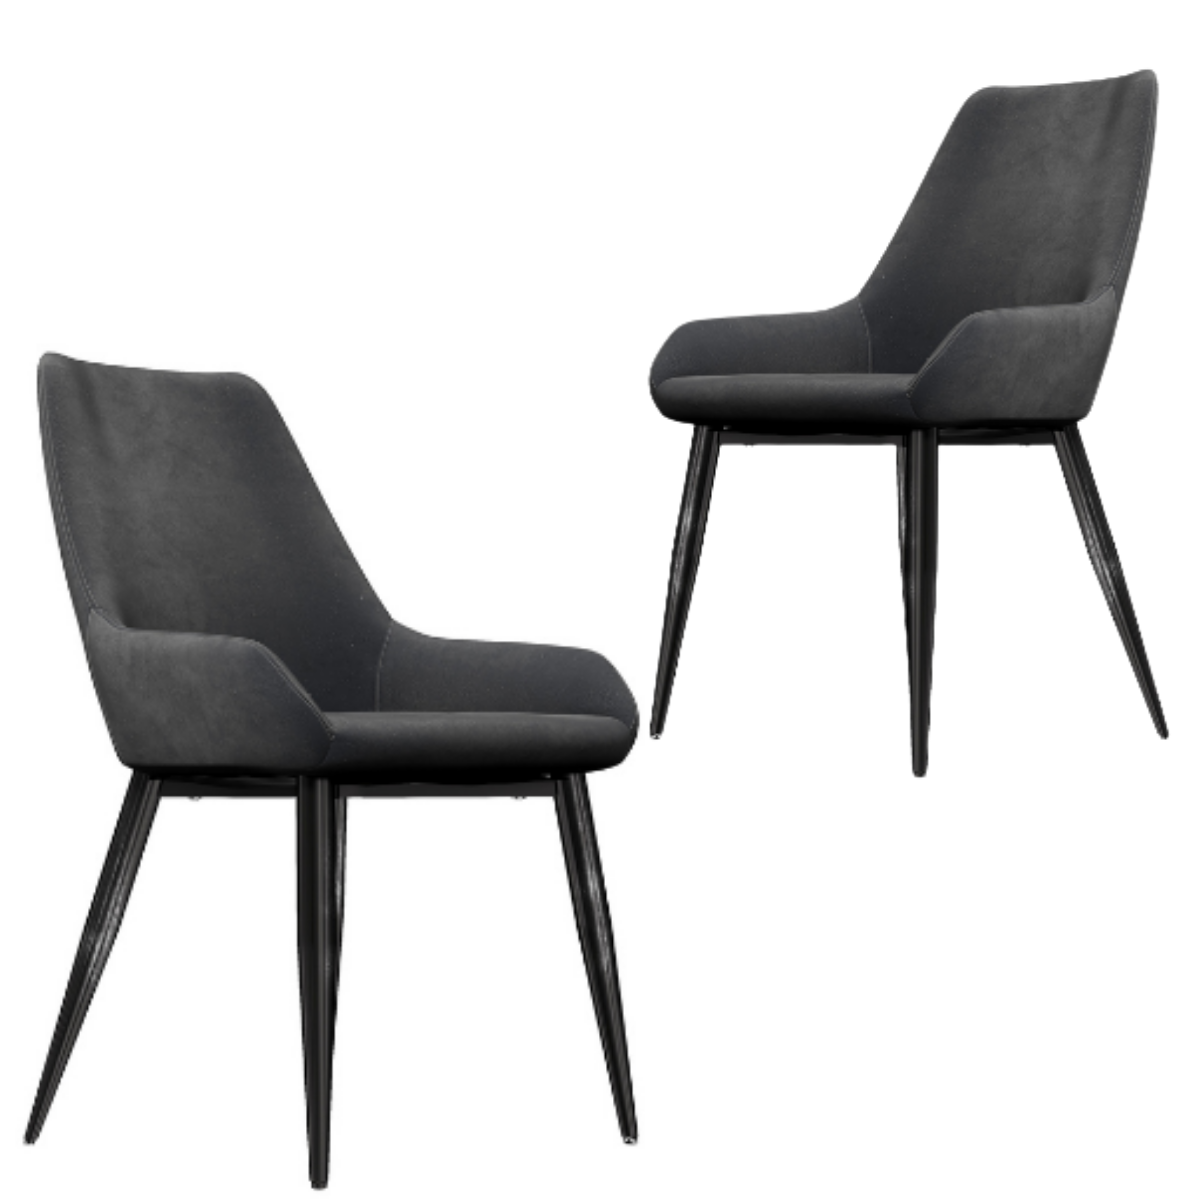 Aldan Dining Chairs (Set Of 2)